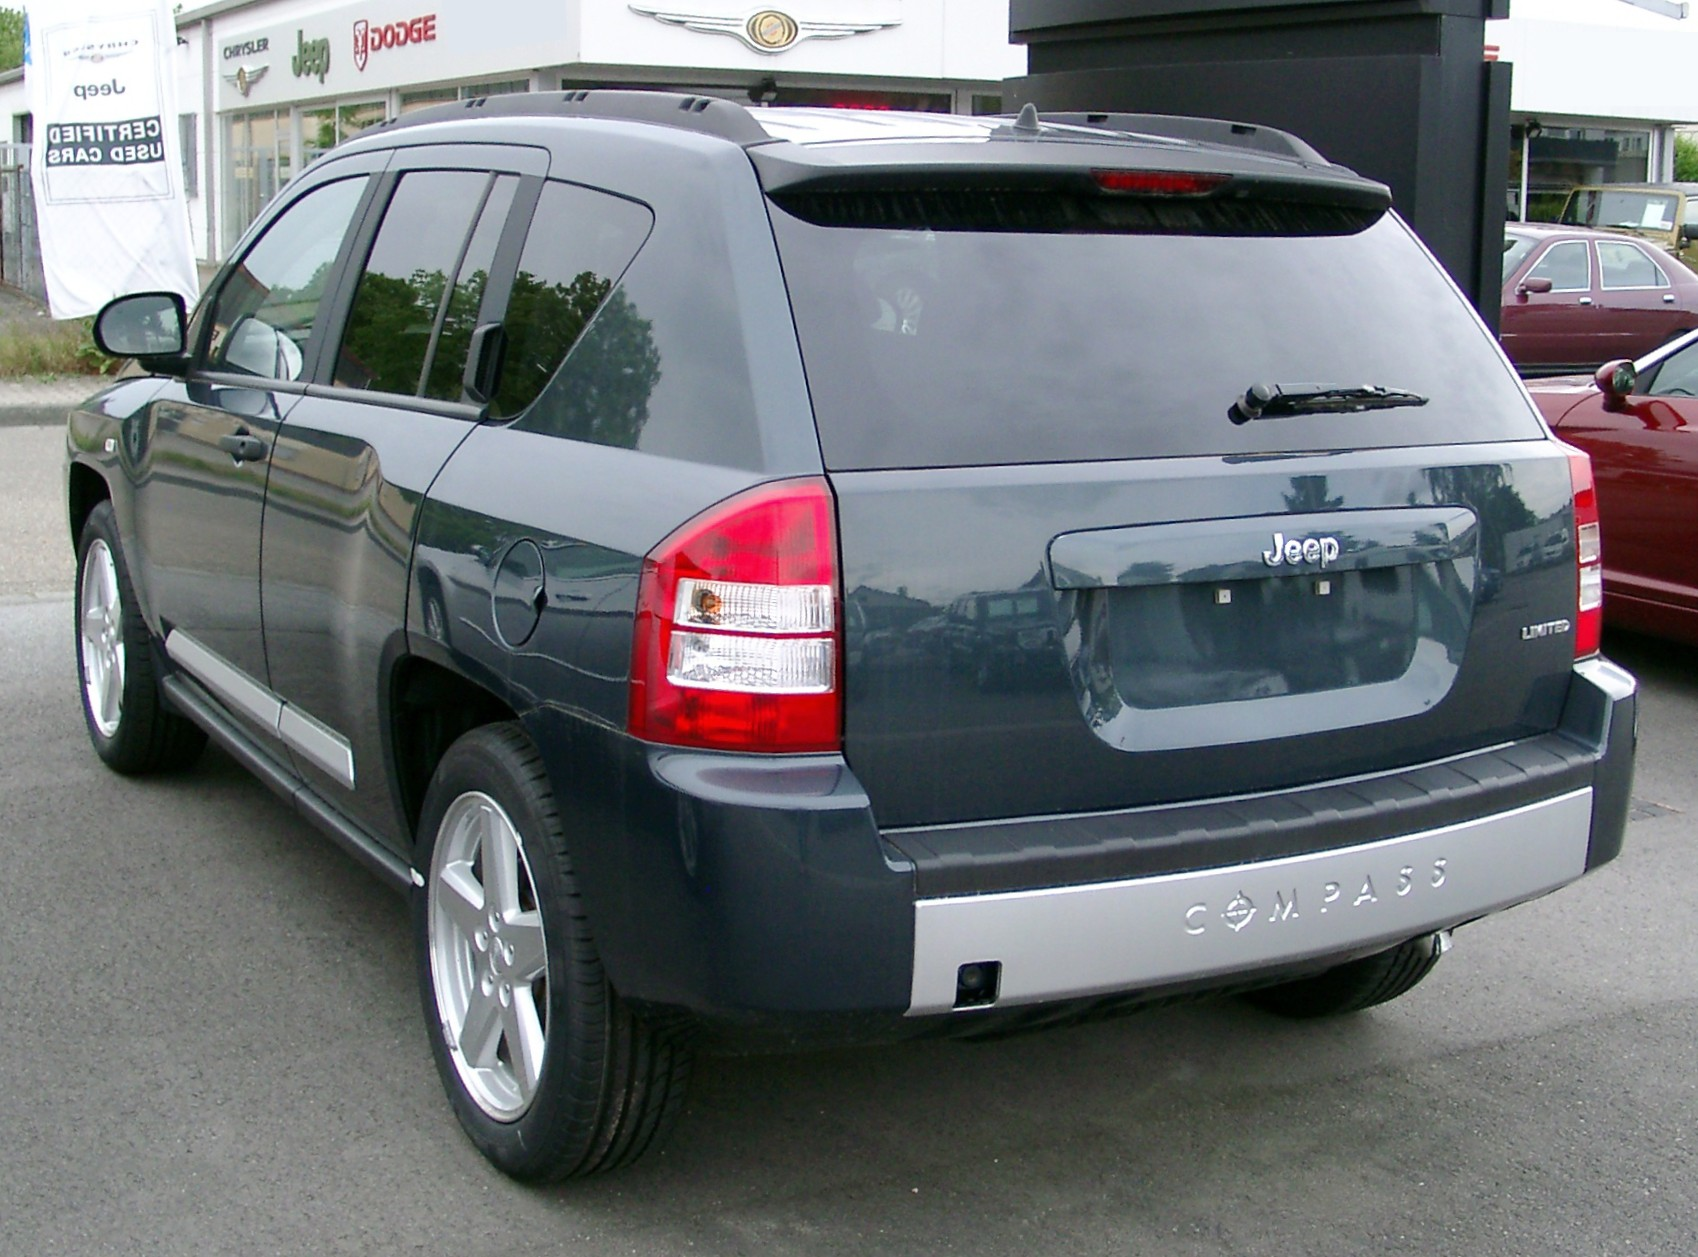 file:jeep compass limited rear 20080517 - wikimedia commons